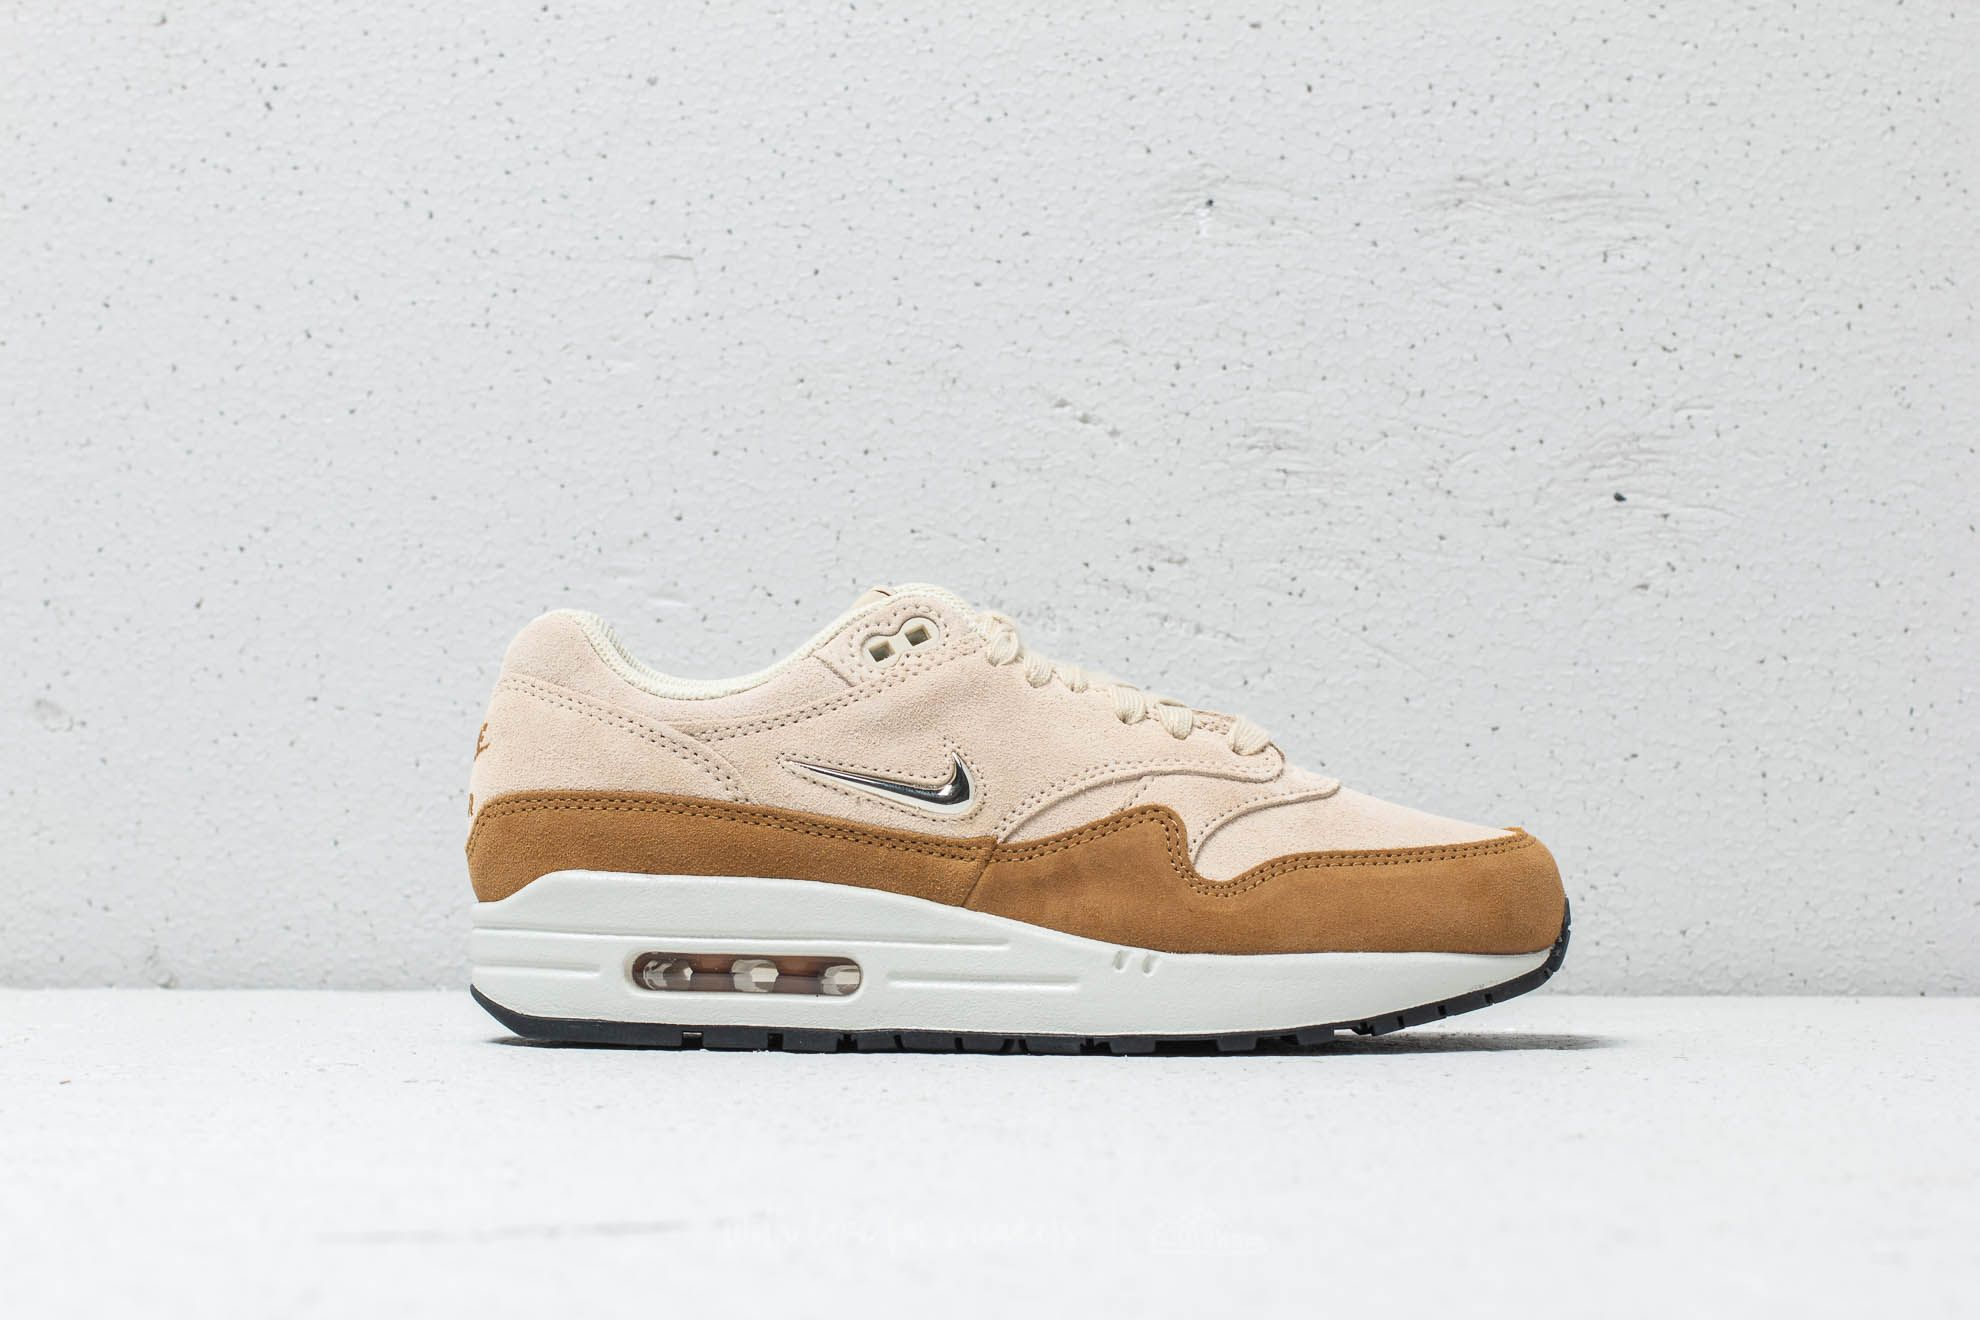 wholesale dealer abd2d e56d3 Nike Wmns Air Max 1 Premium SC Beach Metallic Gold Grain at a great price